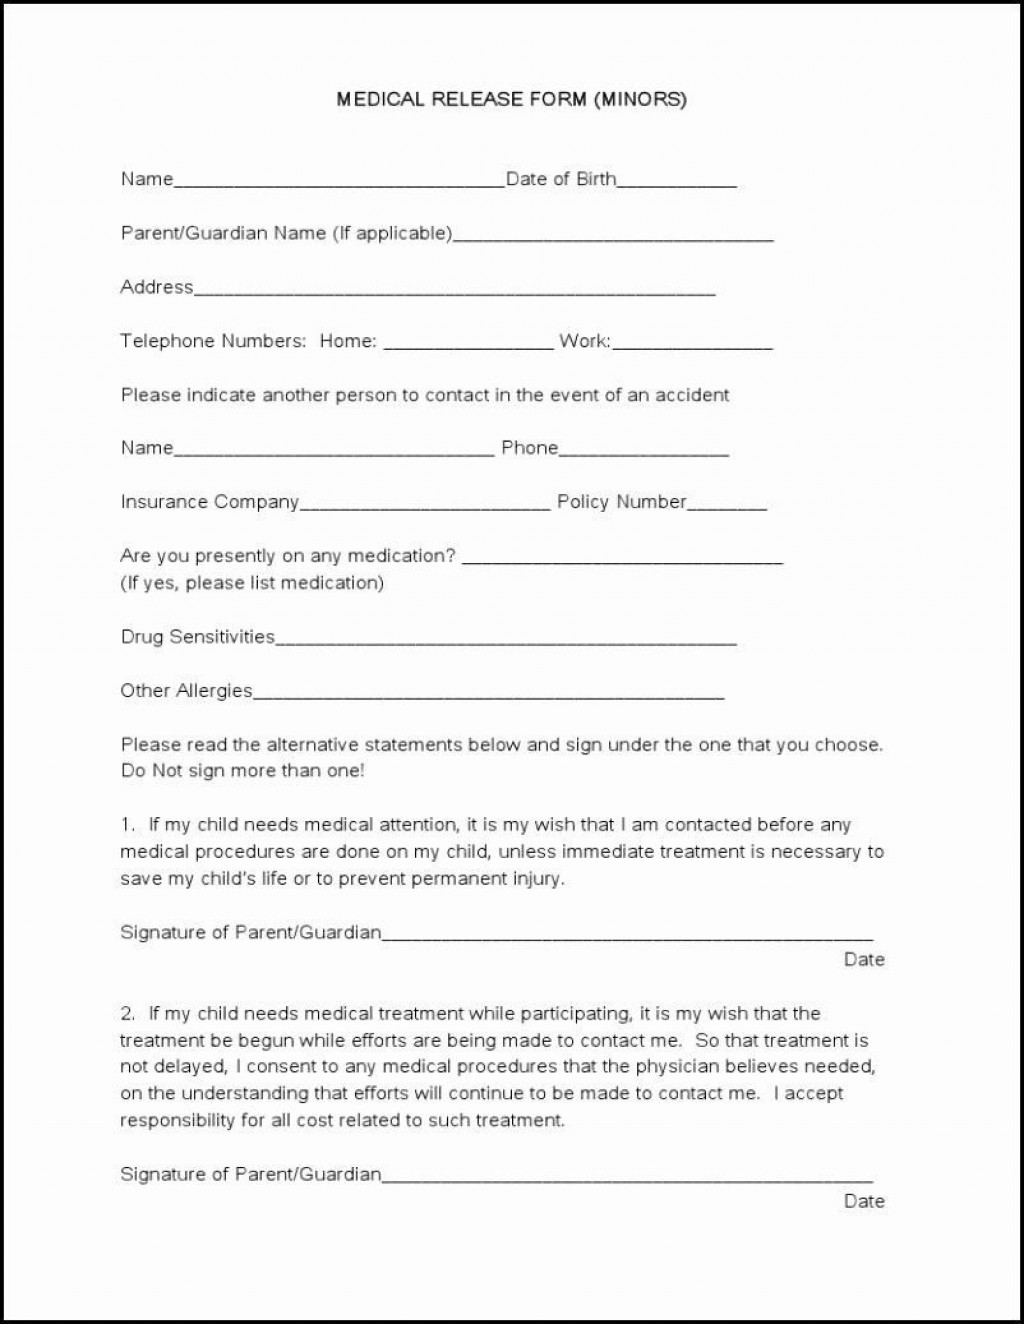 005 Rare Medical Release Form Template Design  Free Consent Uk For MinorLarge